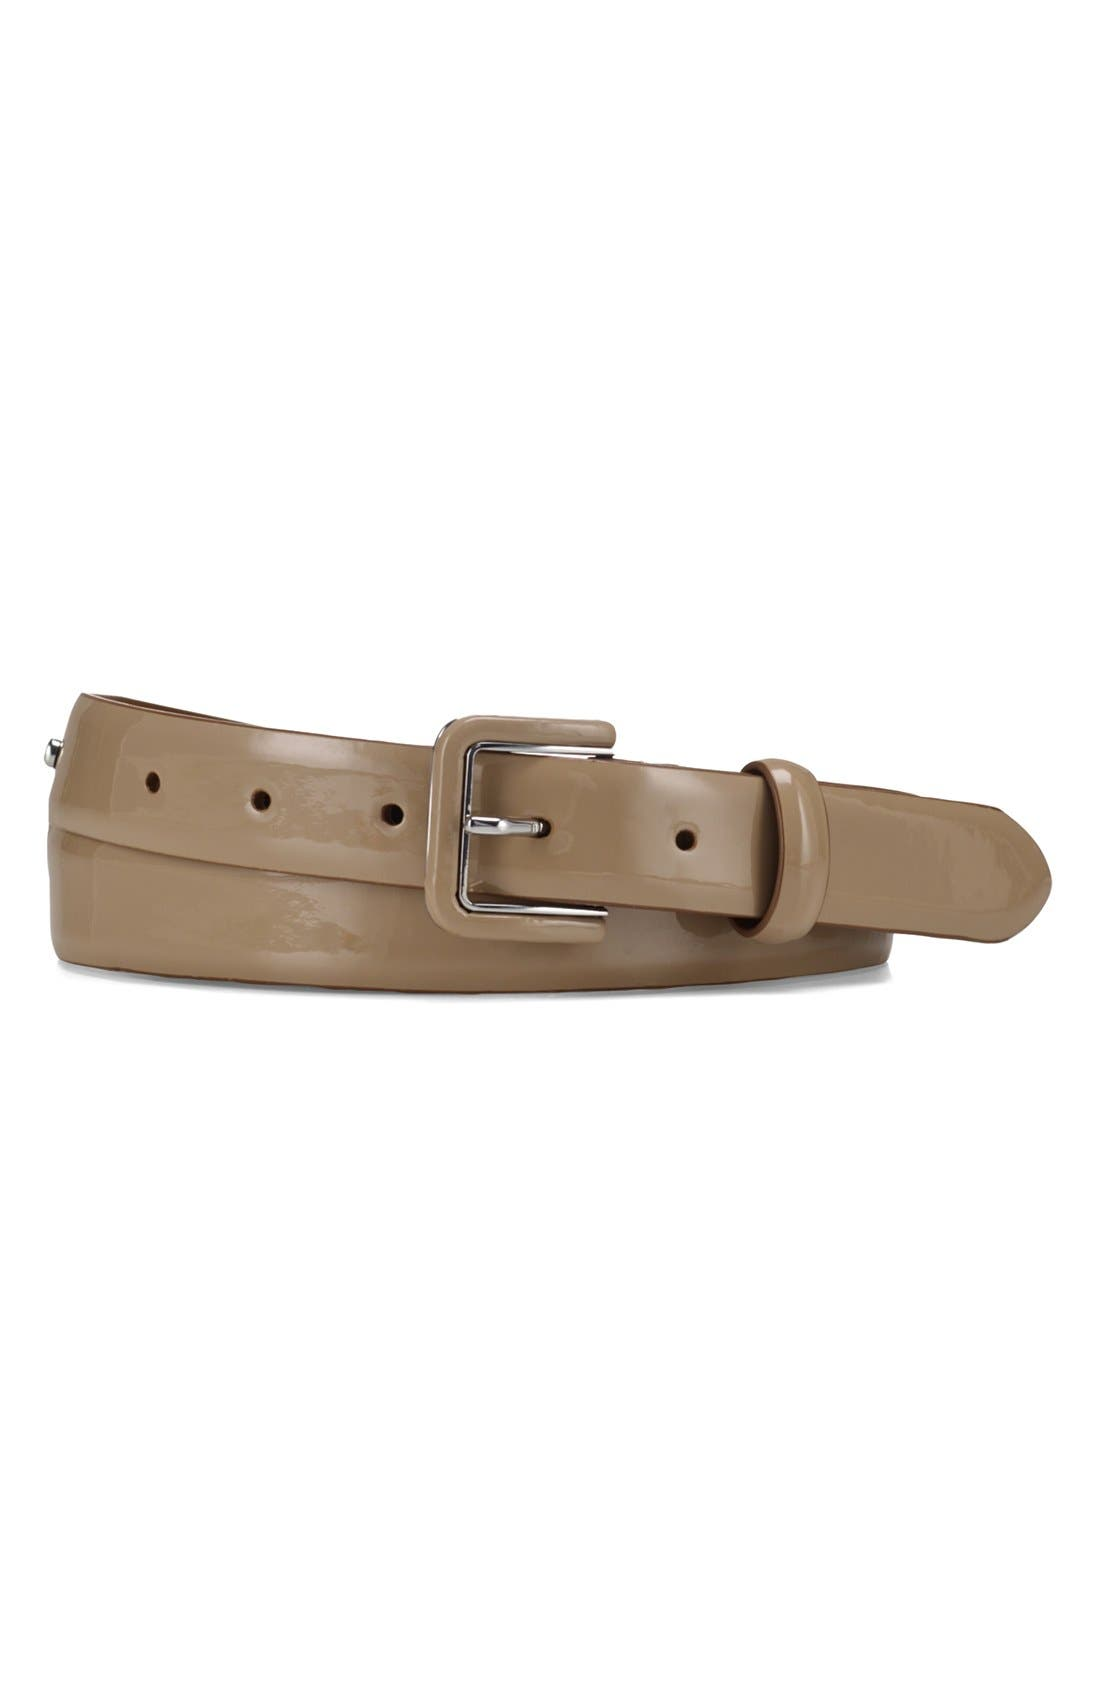 Alternate Image 1 Selected - Lauren Ralph Lauren Logo Debossed Patent Belt